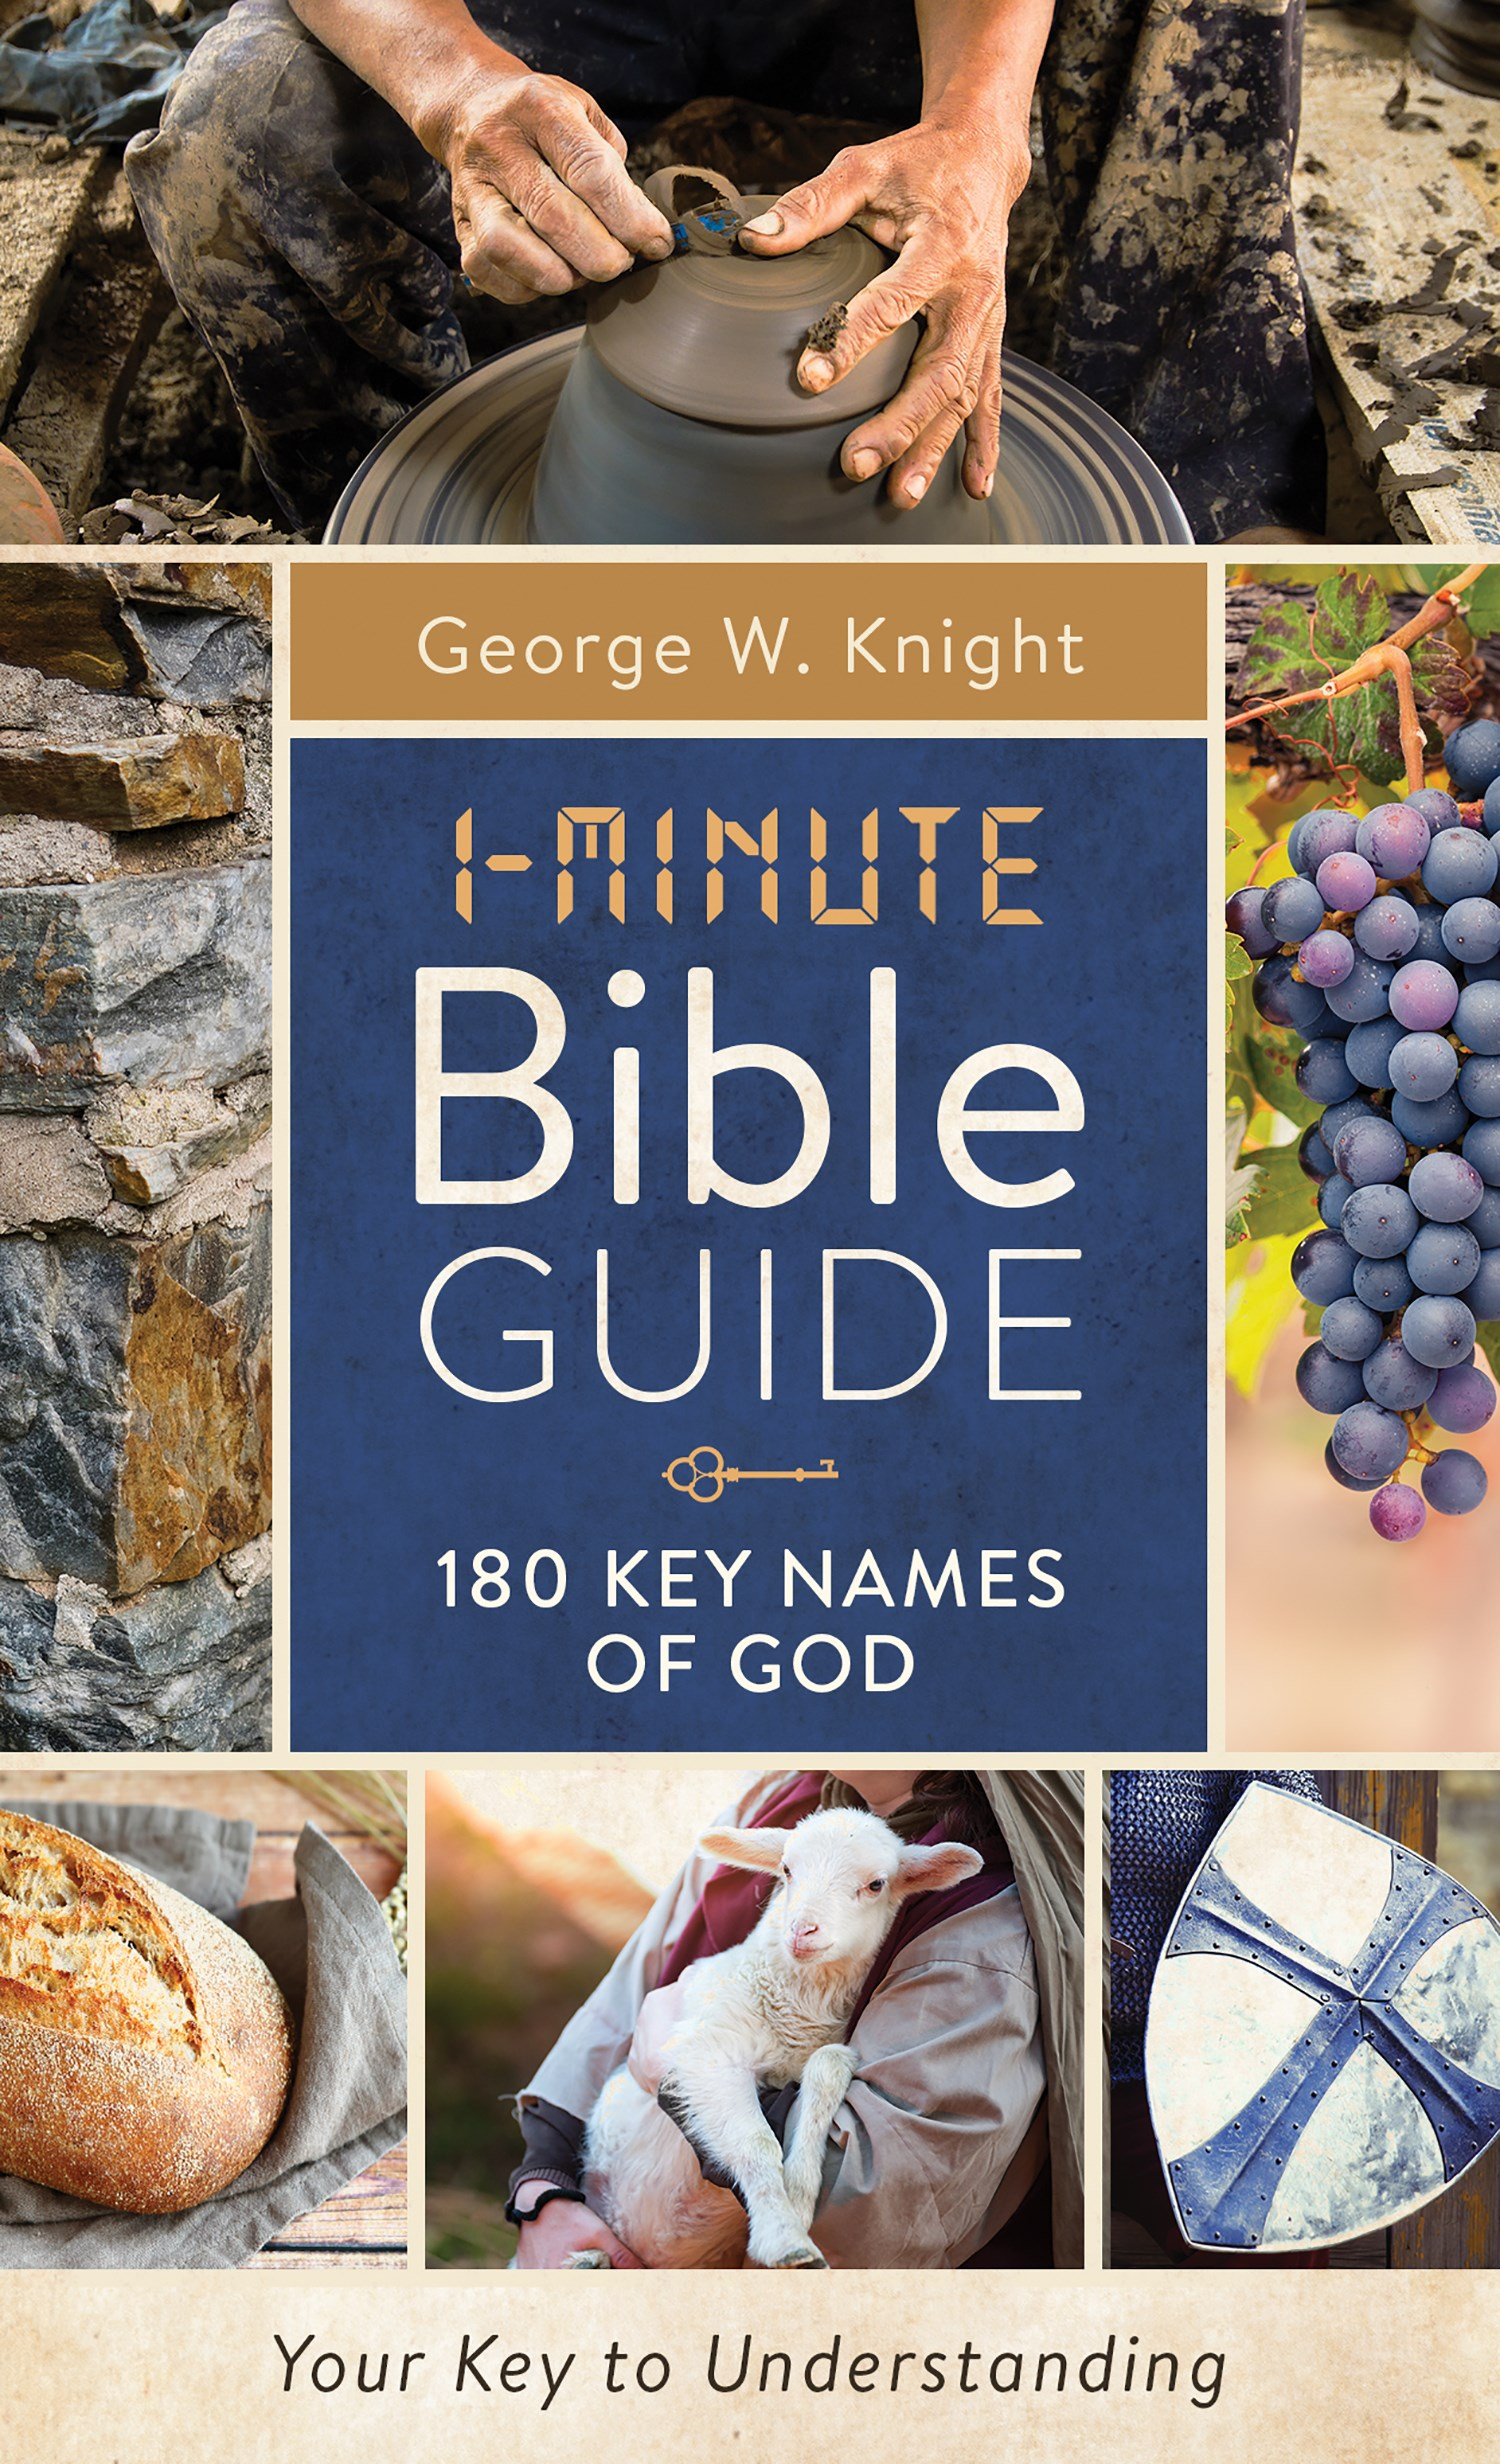 1-Minute Bible Guide: 180 Key Names Of God